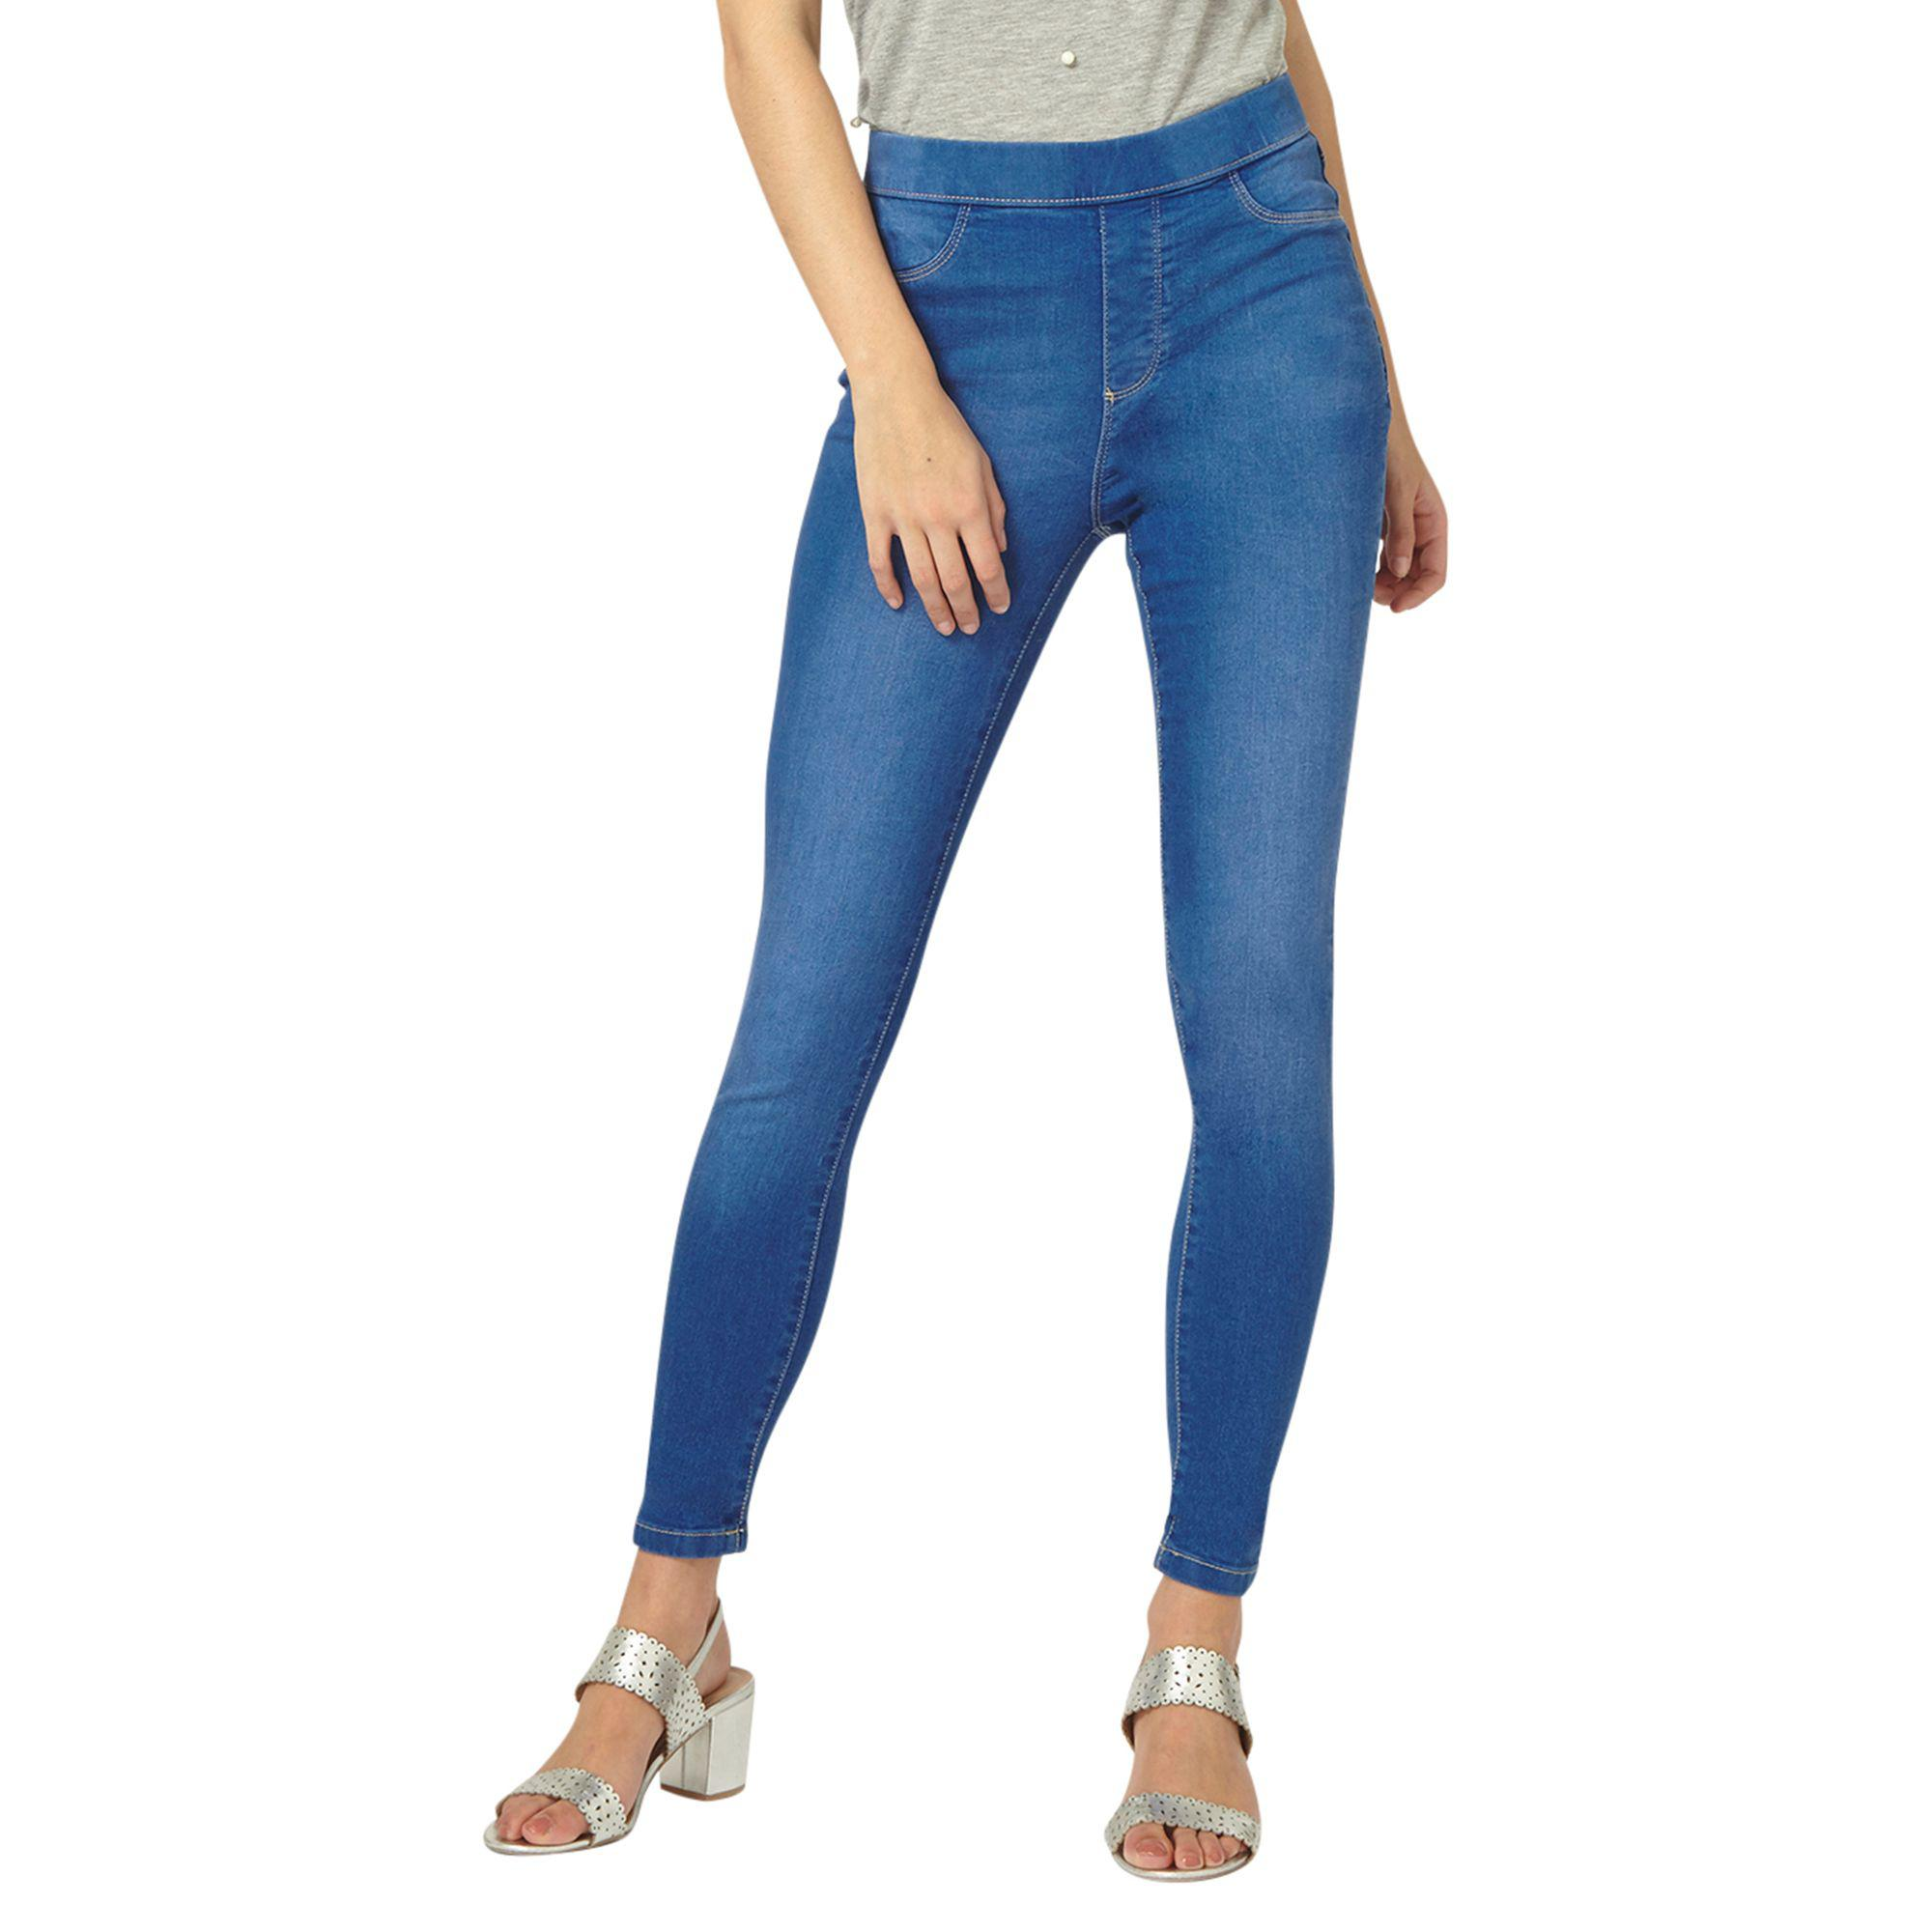 507c6a2d5a3 Dorothy Perkins Tall Bright Blue Eden Crop Jeggings in Blue - Lyst